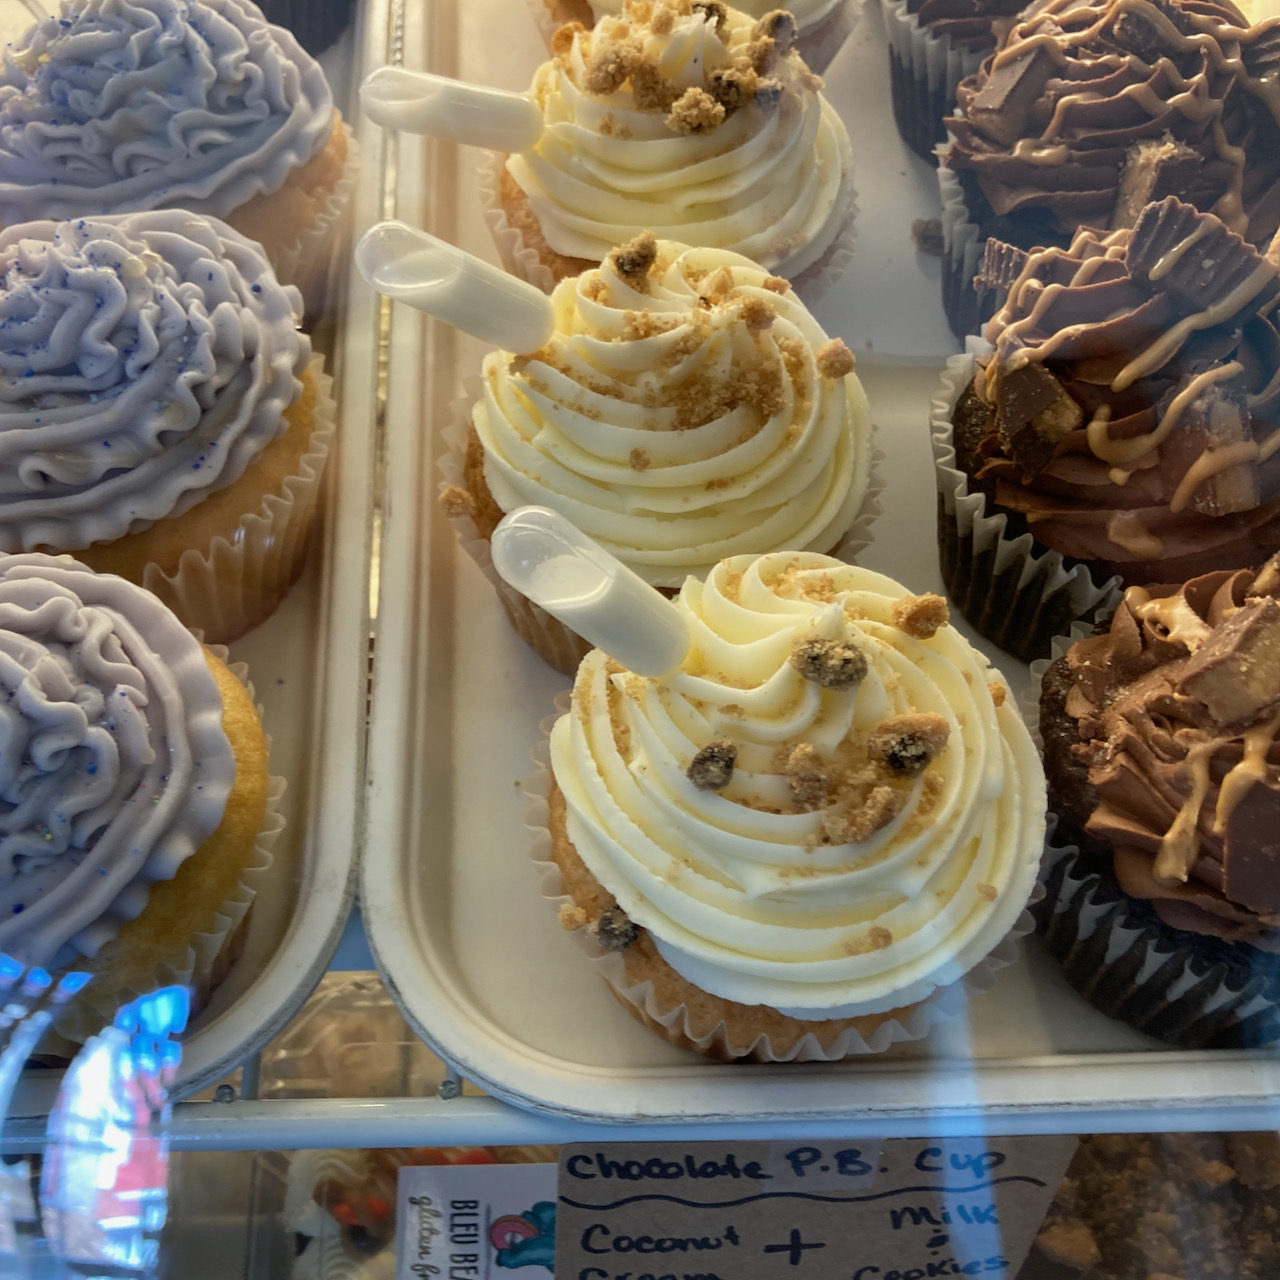 Gluten-free cupcakes under glass case.